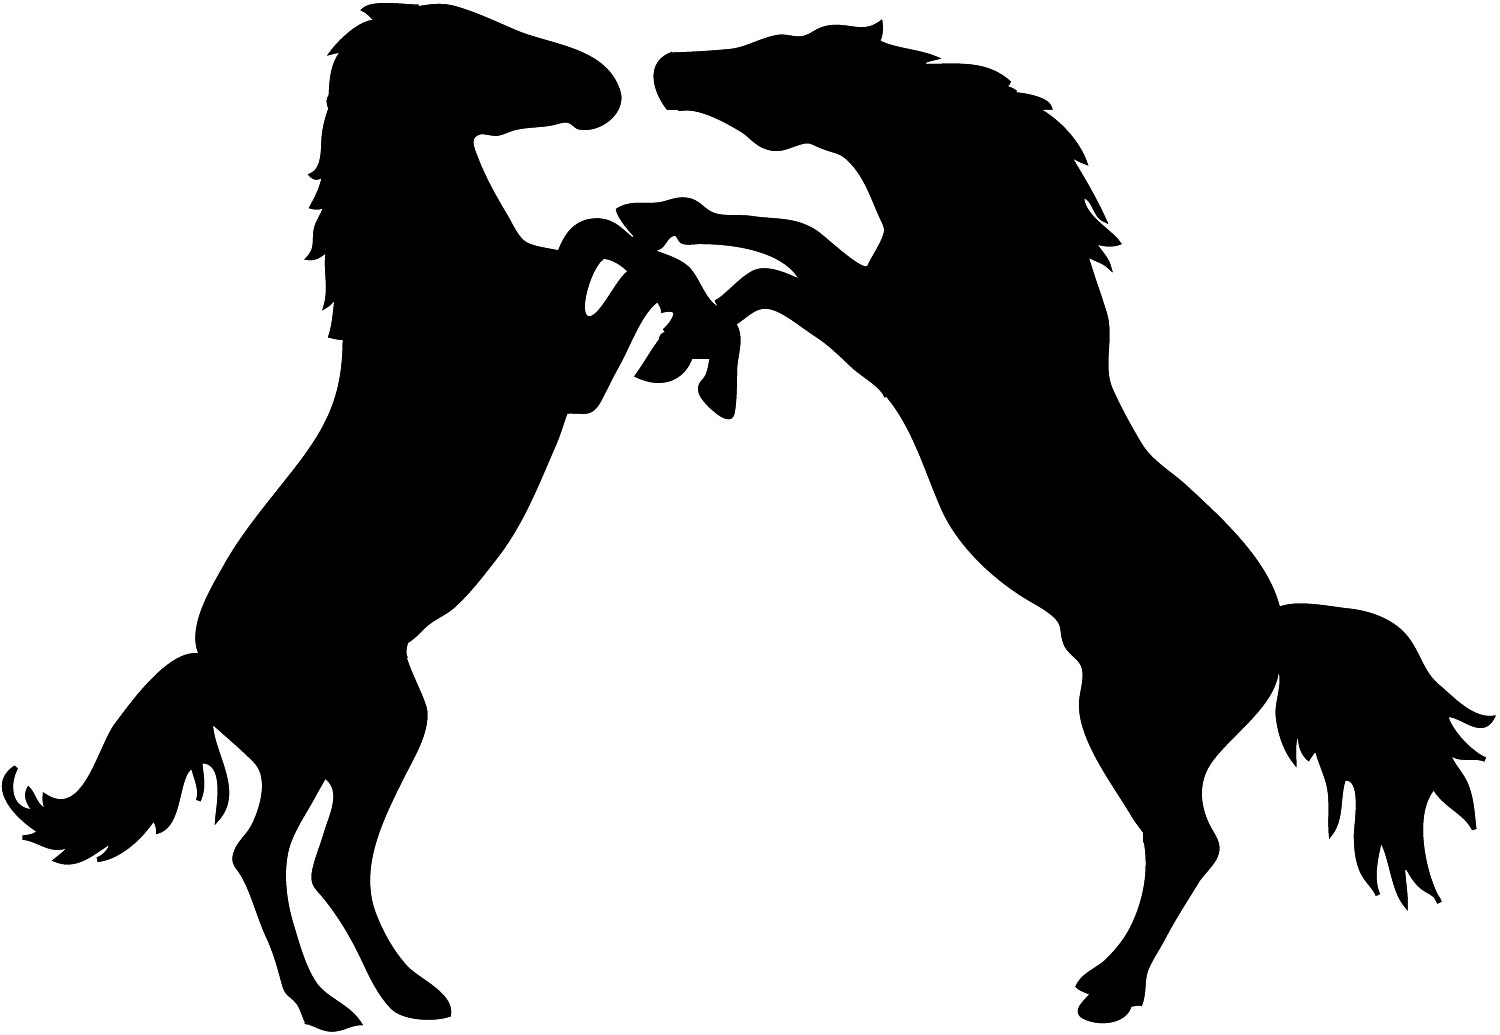 two stallions fighting silhouette